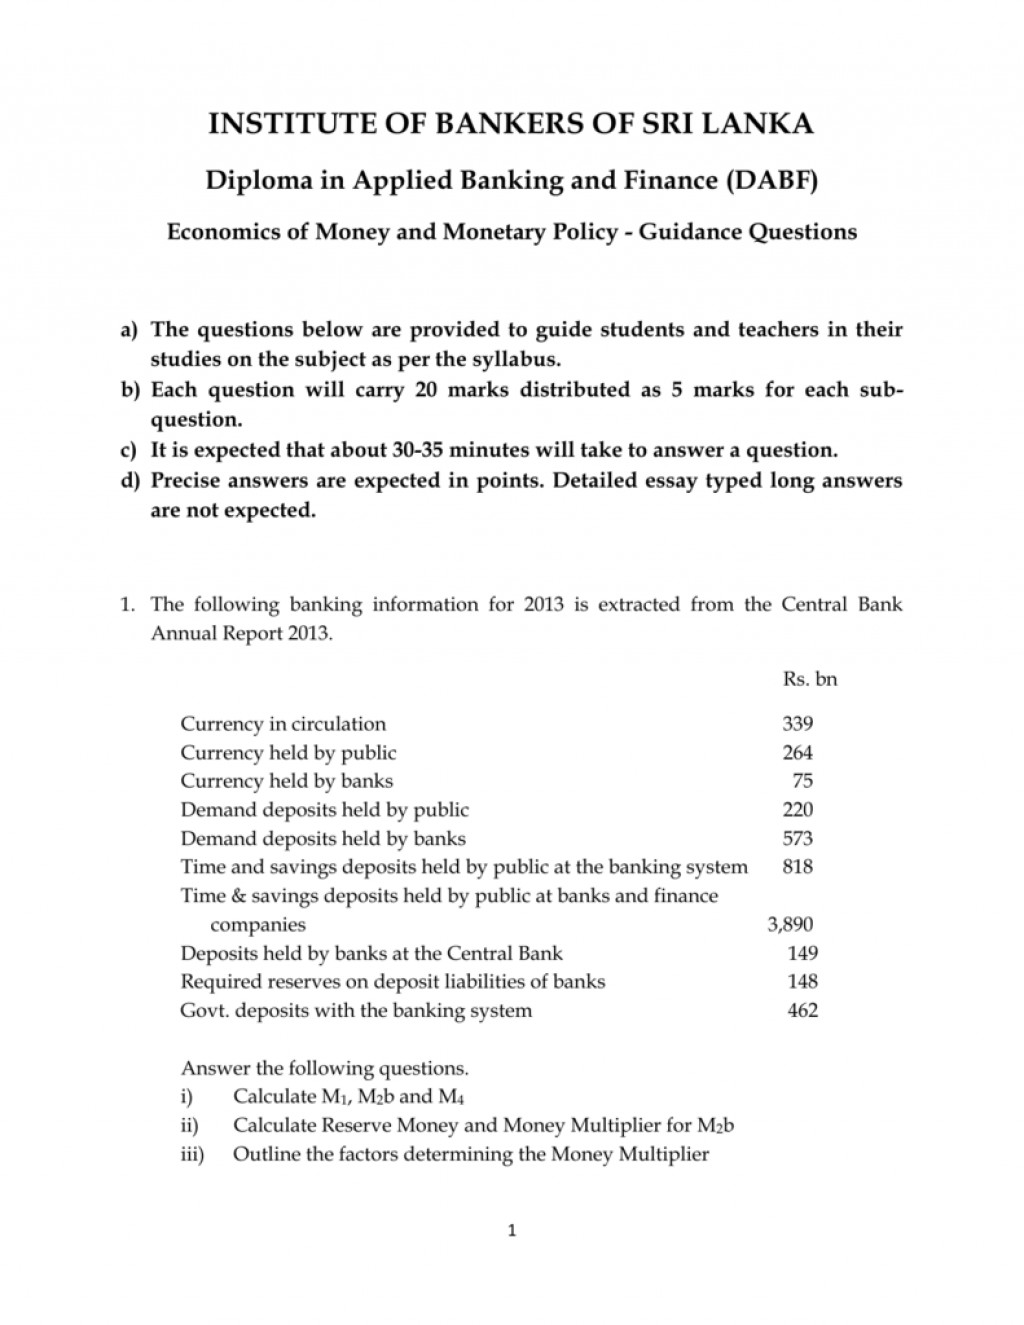 014 Essay Topics Monetary Policy Research Paper Australia Committee Economics Of Remarkable In Philippines India International Large